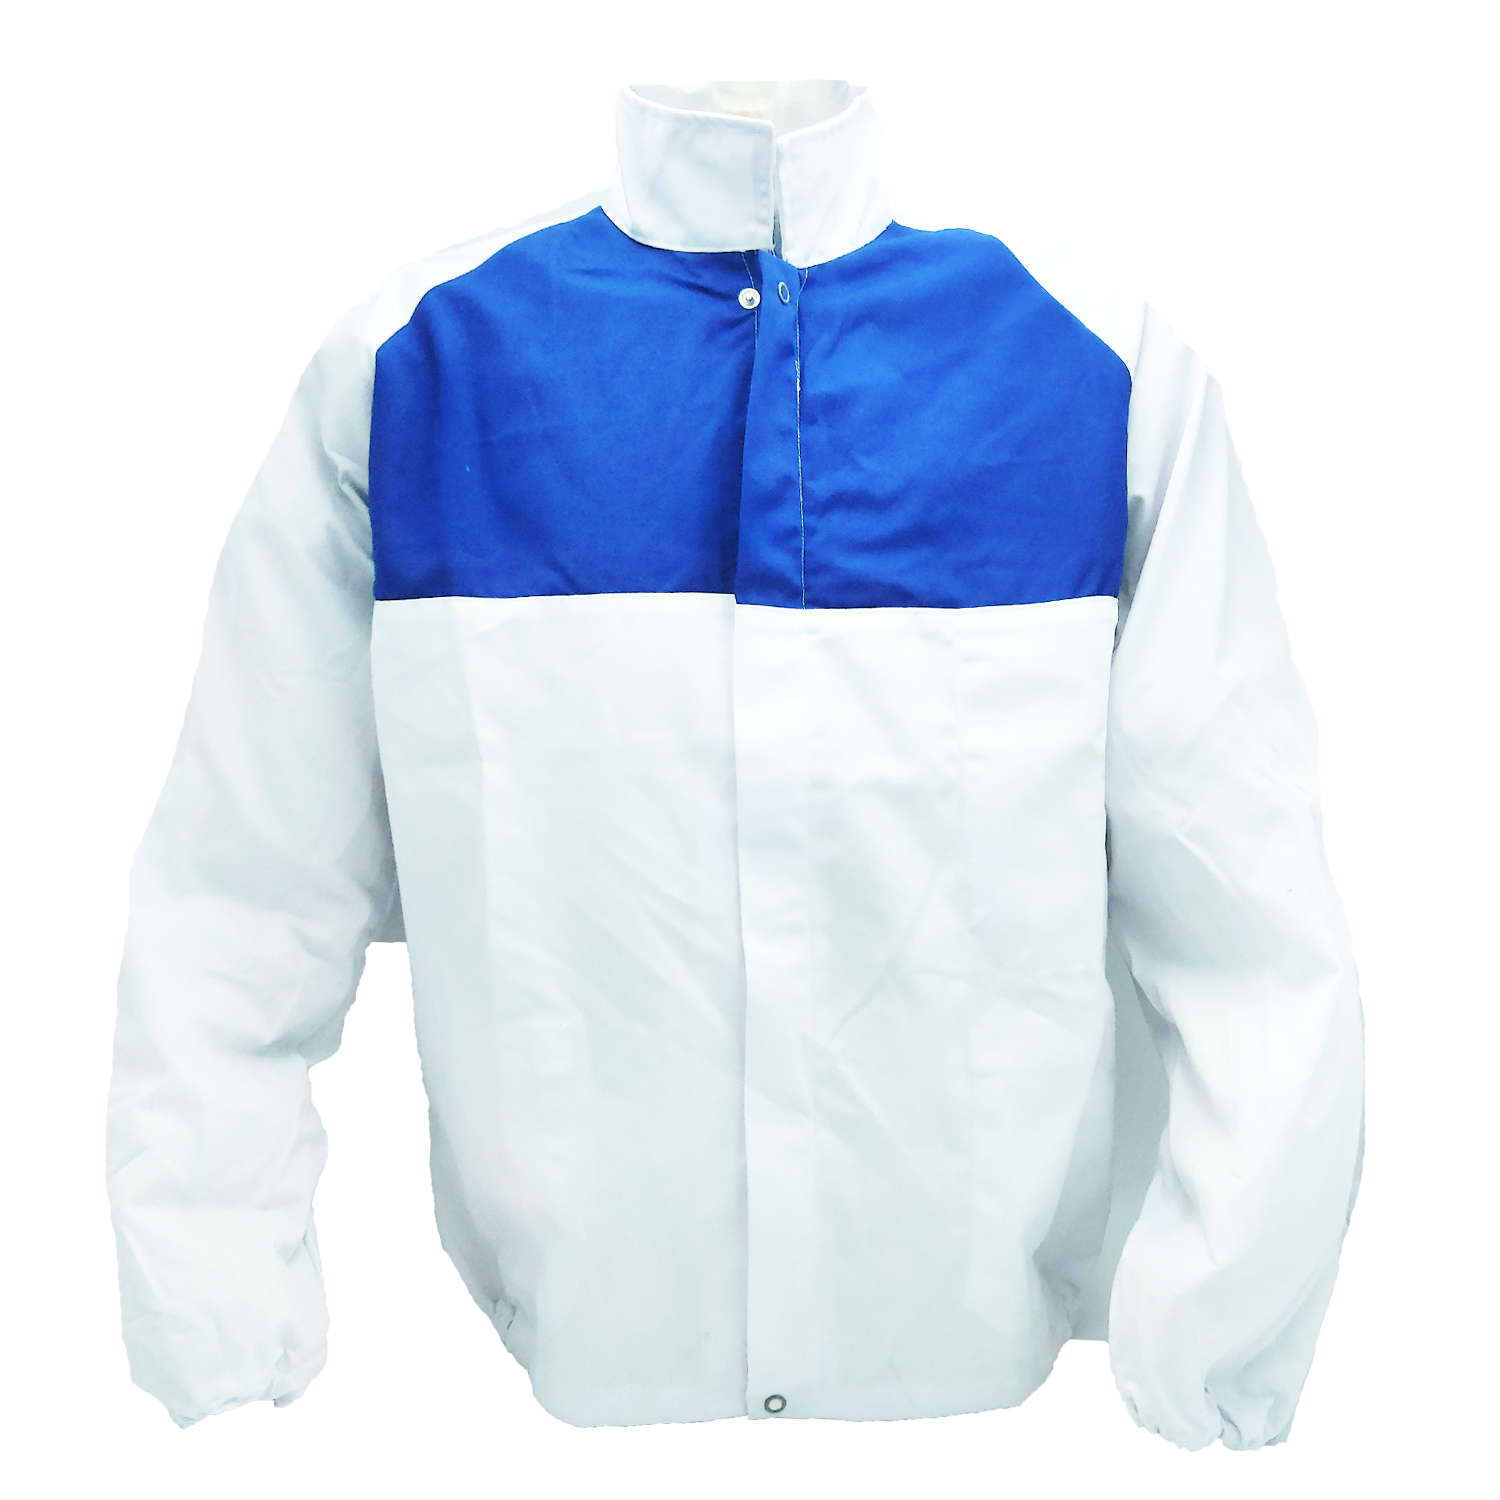 Jacket jacket to work the white man, factory worker, shop decorator cotton